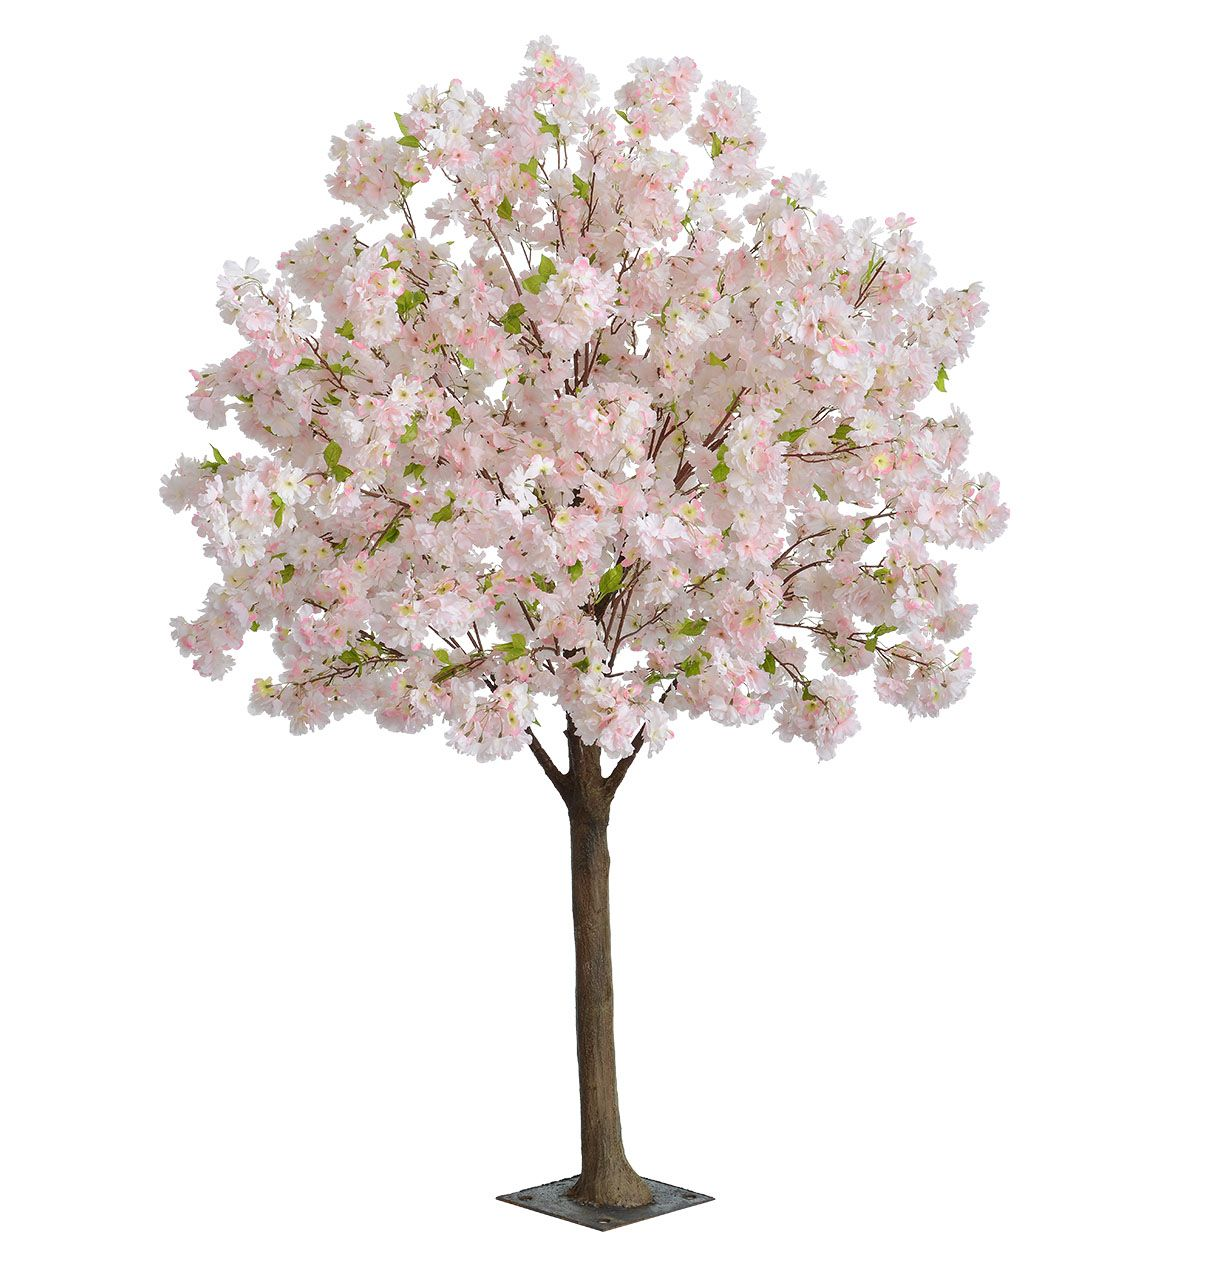 Artificial Blossom Tree With Pink Or Cream Silk Cherry Blossom Flowers Blossom Trees Cherry Blossom Flowers Cherry Blossom Tree